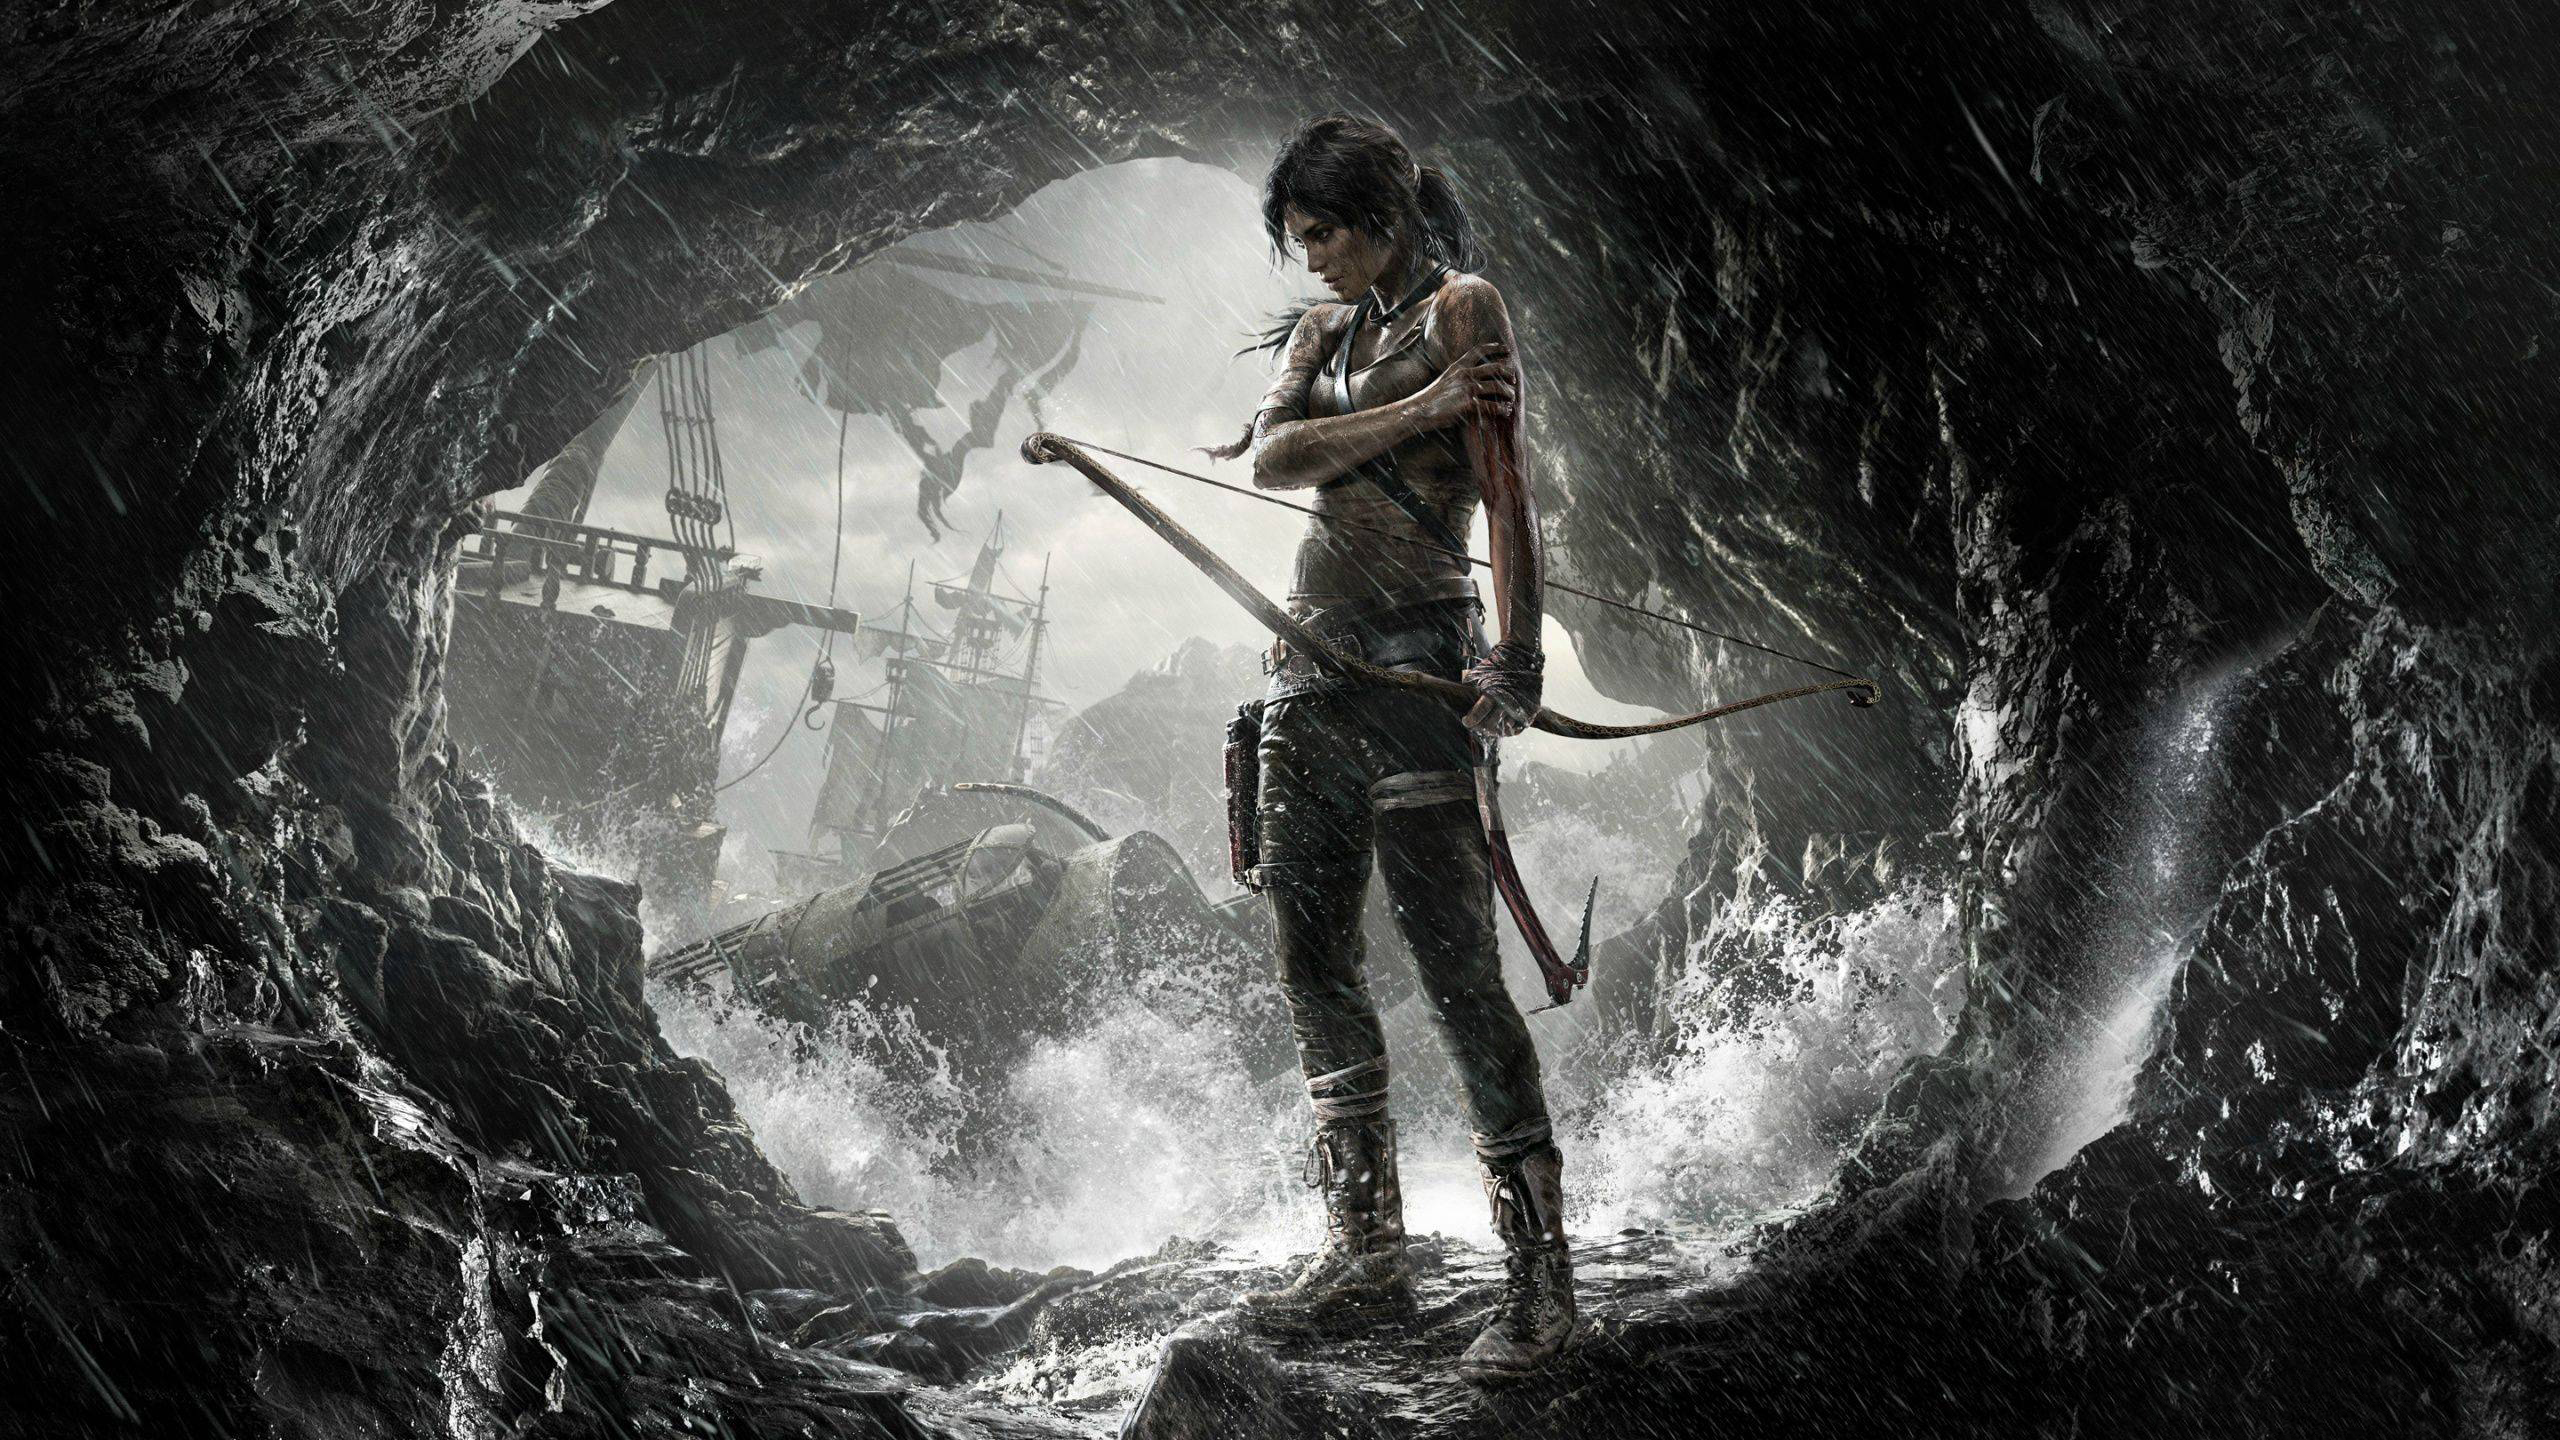 tomb raider new hd wallpapers 2015 - all hd wallpapers